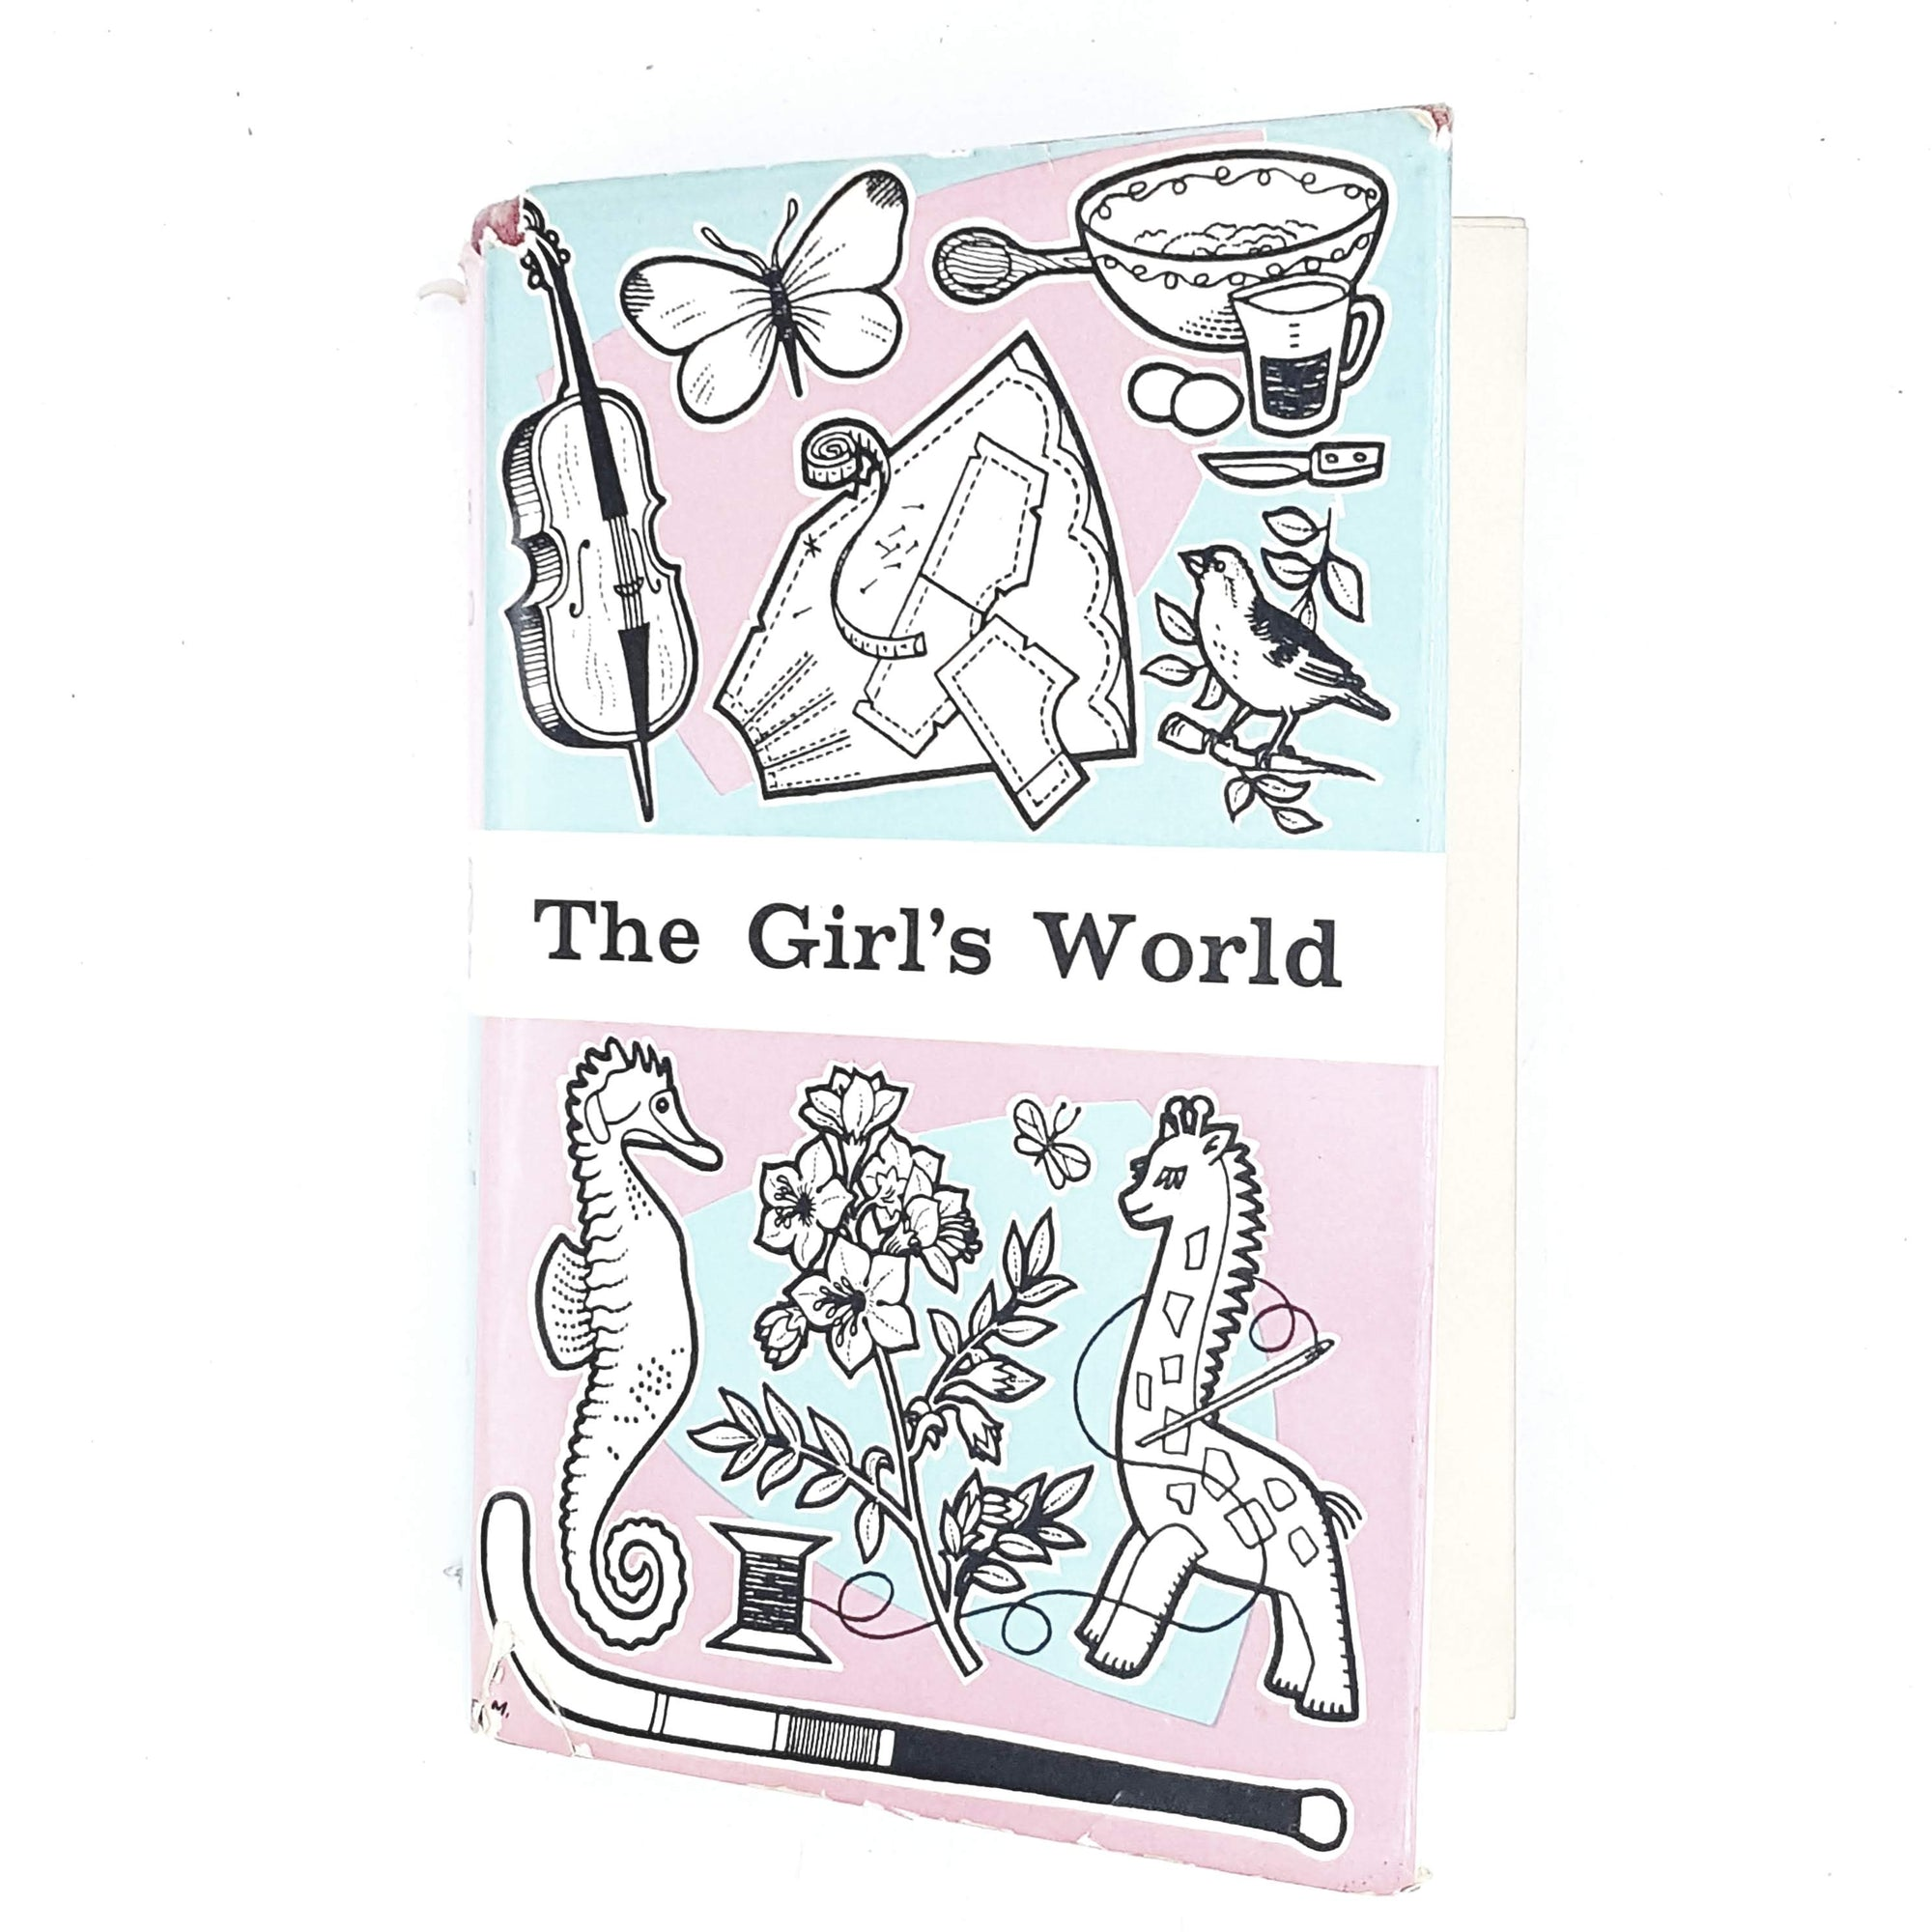 girls-world-blue-pink-pastel-vintage-book